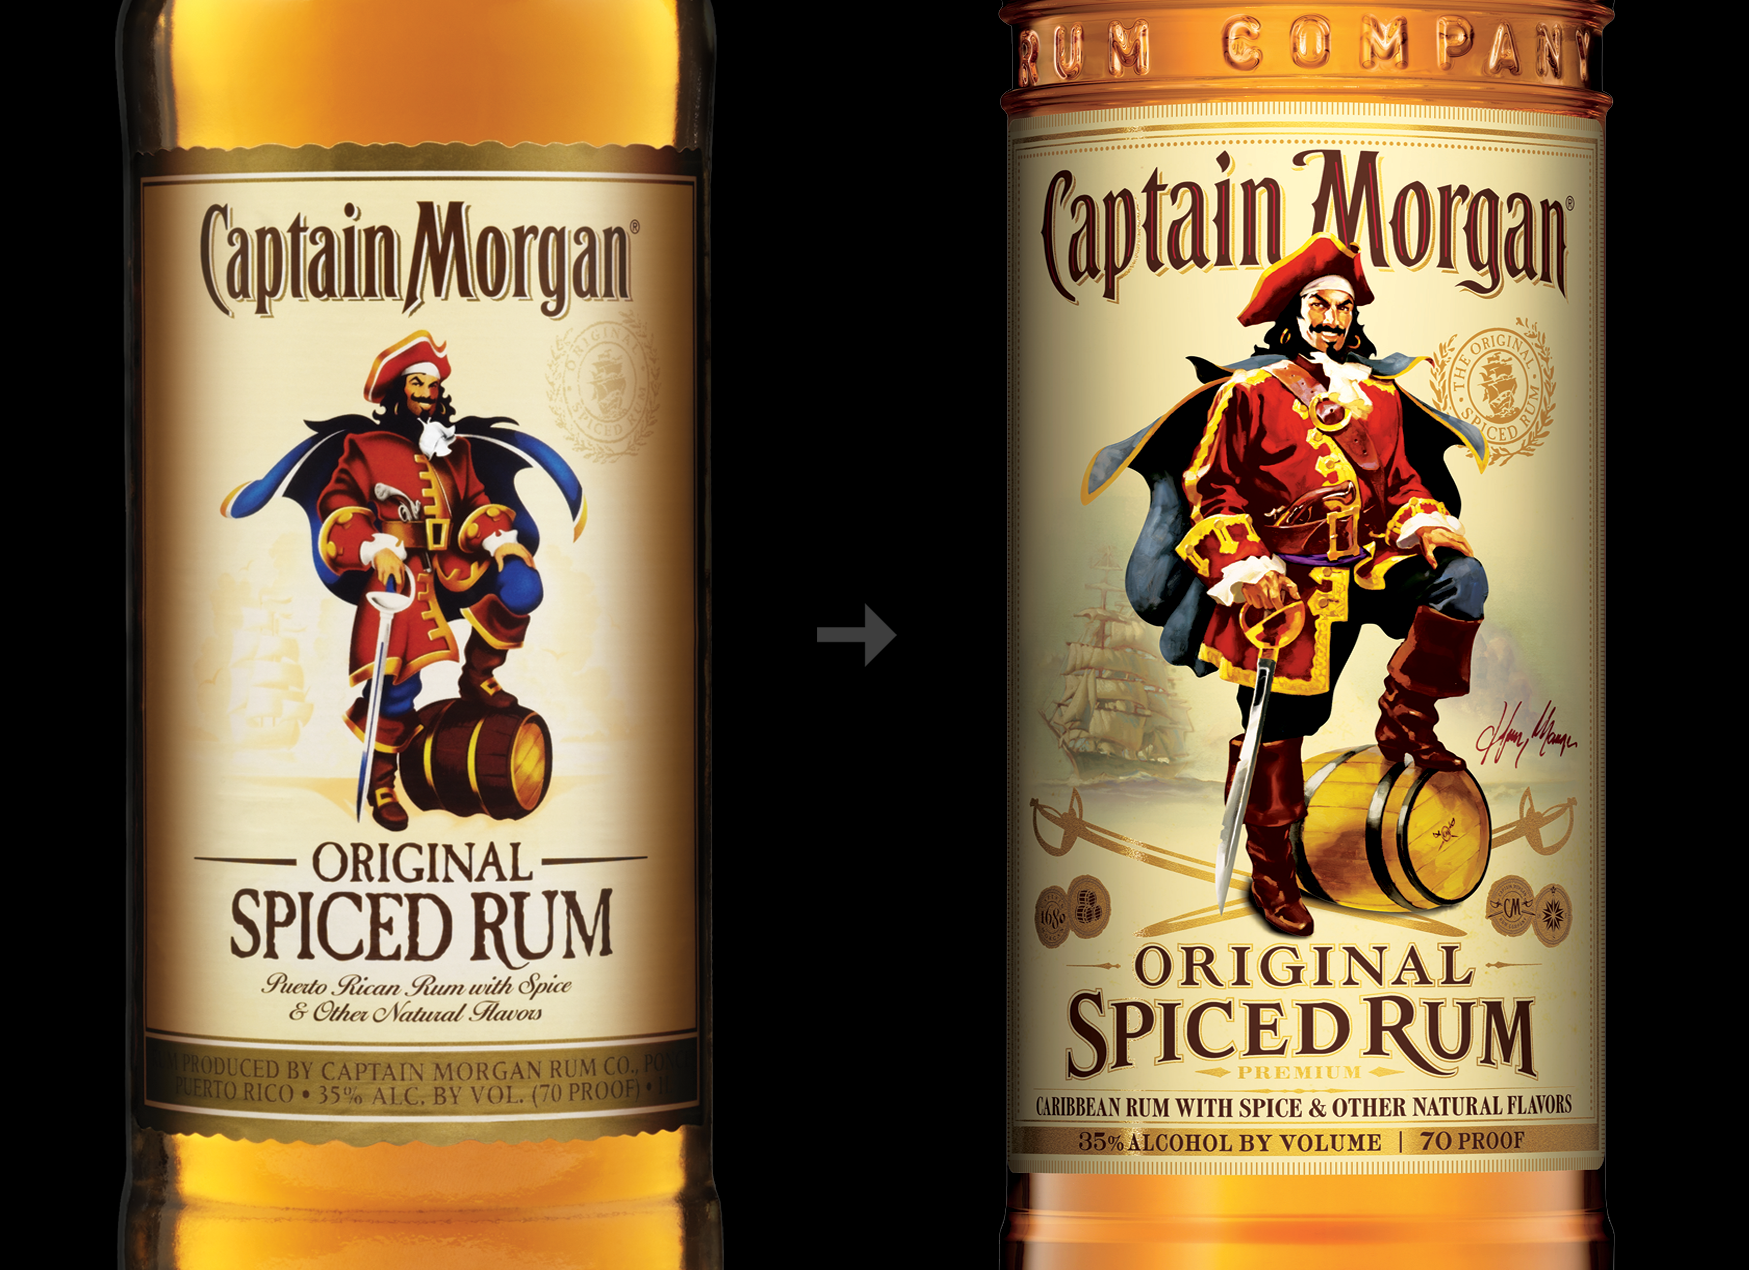 Captain Morgan Rum bottle redesign, before and after